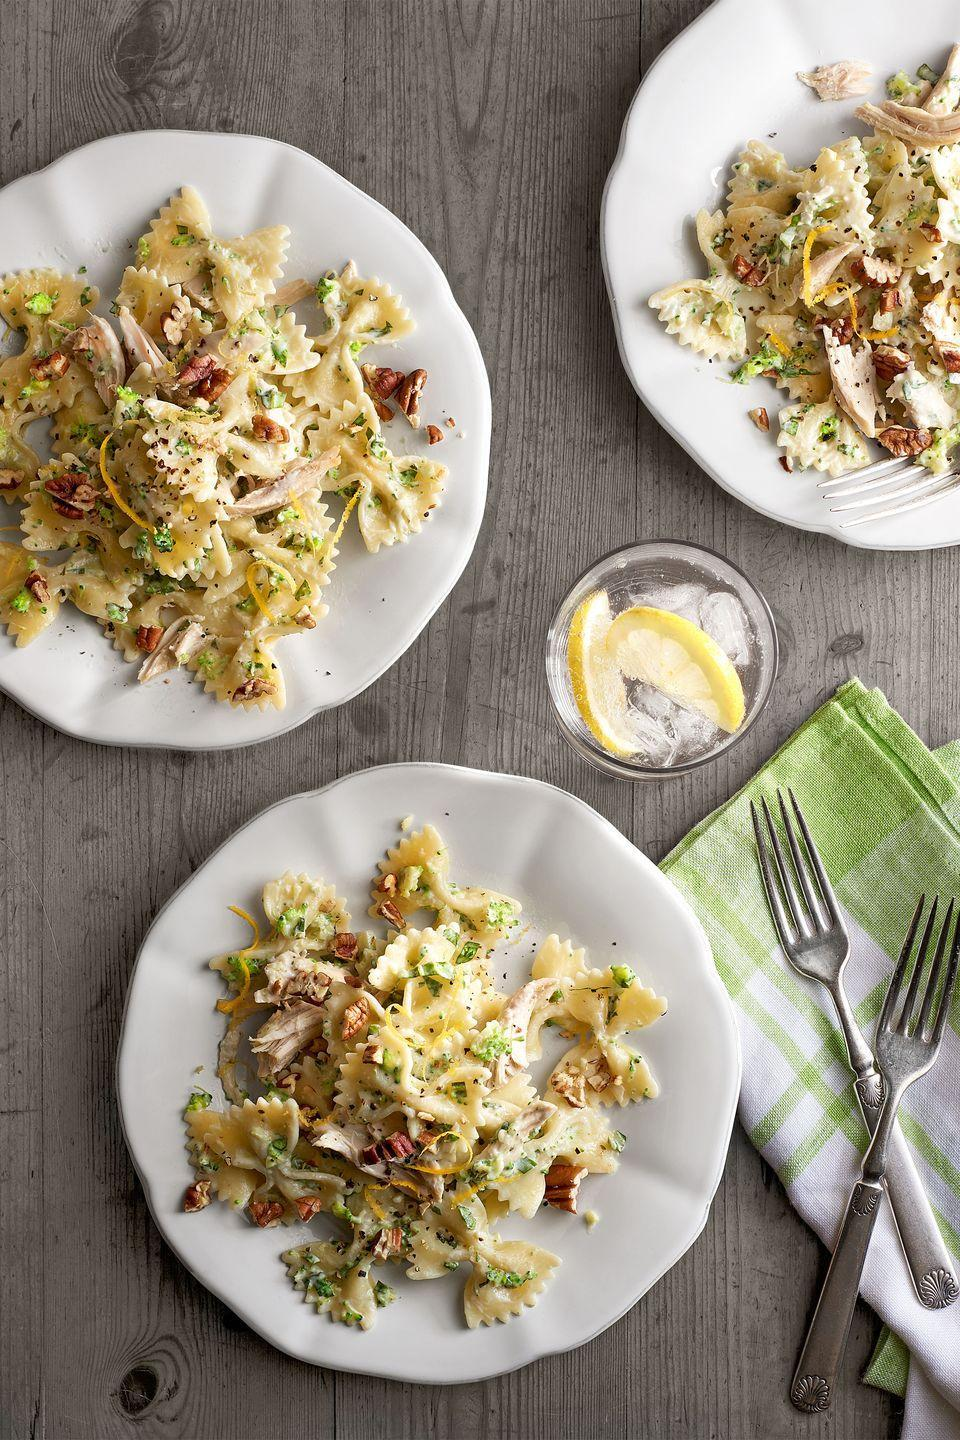 """<p>Toasted pecans add unexpected warmth and crunch to this creamy pasta dish.</p><p><strong><a href=""""https://www.countryliving.com/food-drinks/recipes/a6297/creamy-chicken-broccoli-pesto-bow-ties-recipe-clx0215/"""" rel=""""nofollow noopener"""" target=""""_blank"""" data-ylk=""""slk:Get the recipe"""" class=""""link rapid-noclick-resp"""">Get the recipe</a>.</strong></p>"""